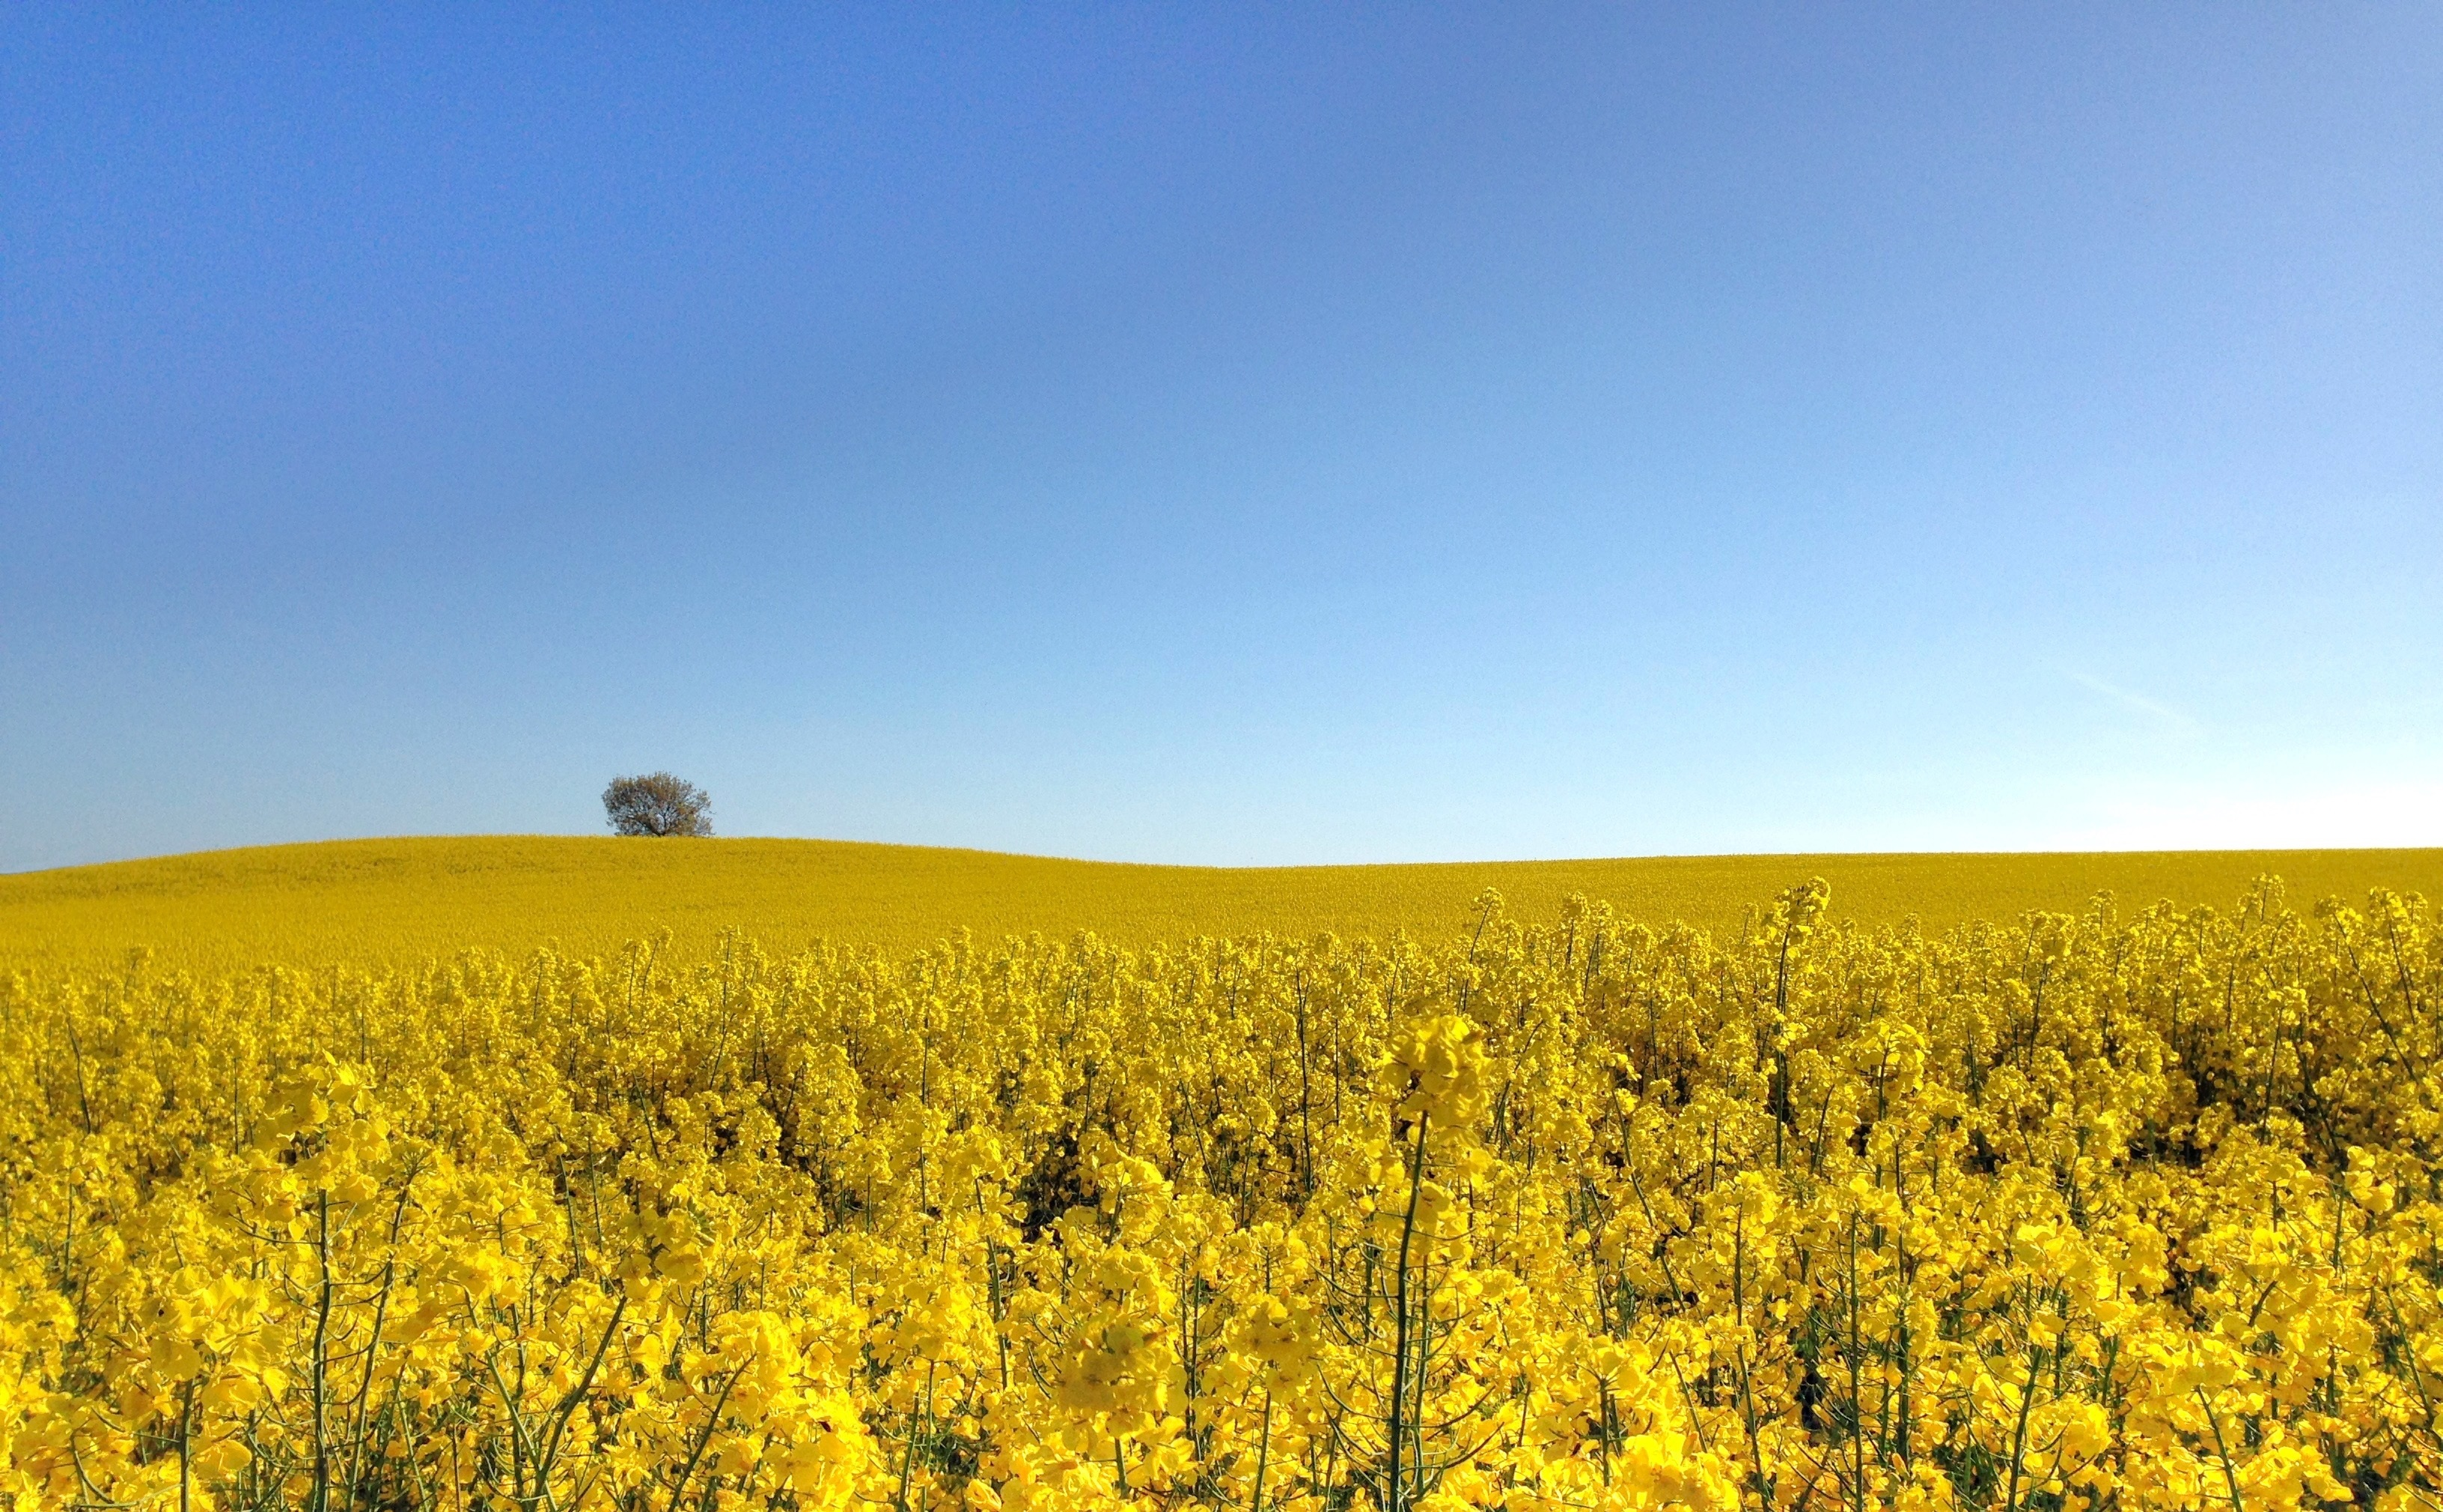 Canola field with rolling hill and blue sky in the background.